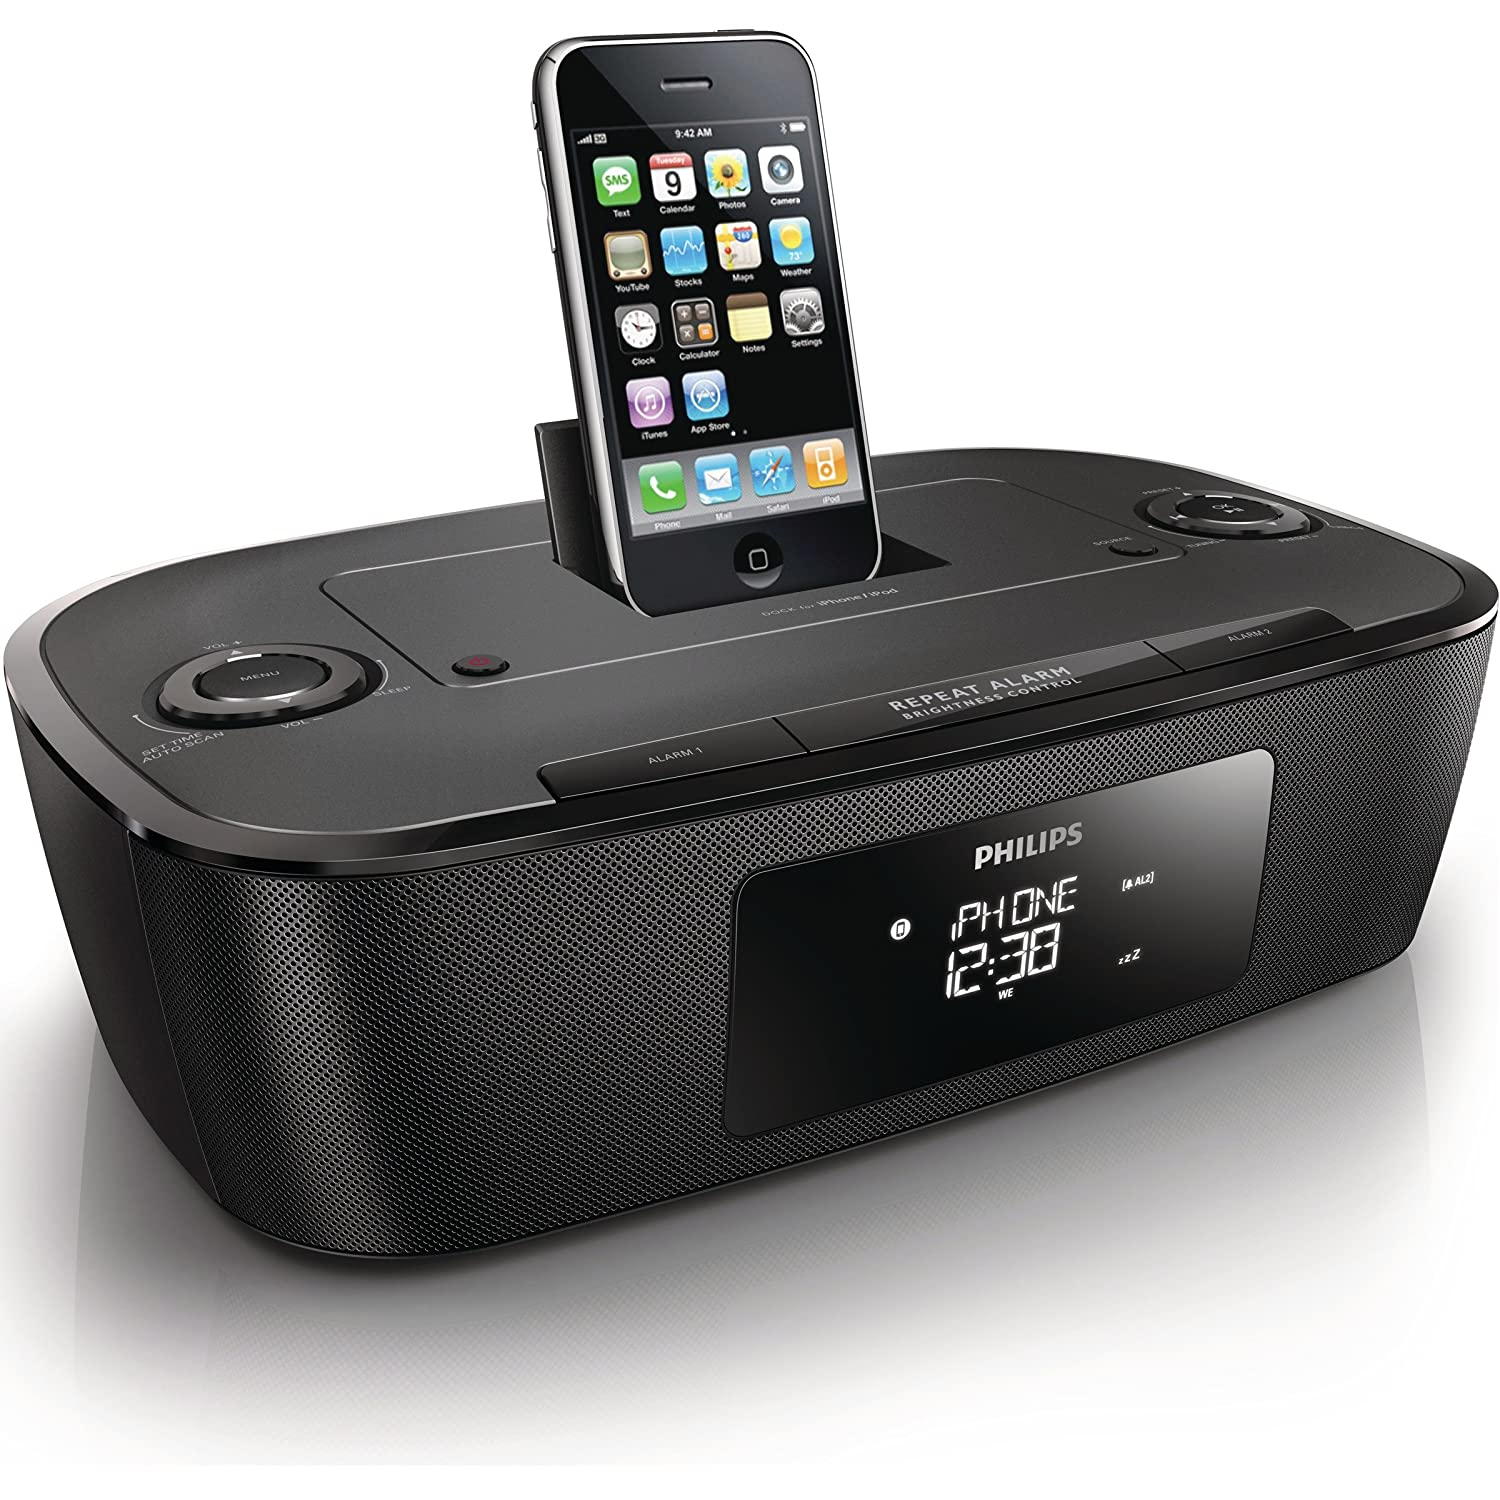 philips dab clock radio for ipod touch iphone 3gs 4 4s. Black Bedroom Furniture Sets. Home Design Ideas